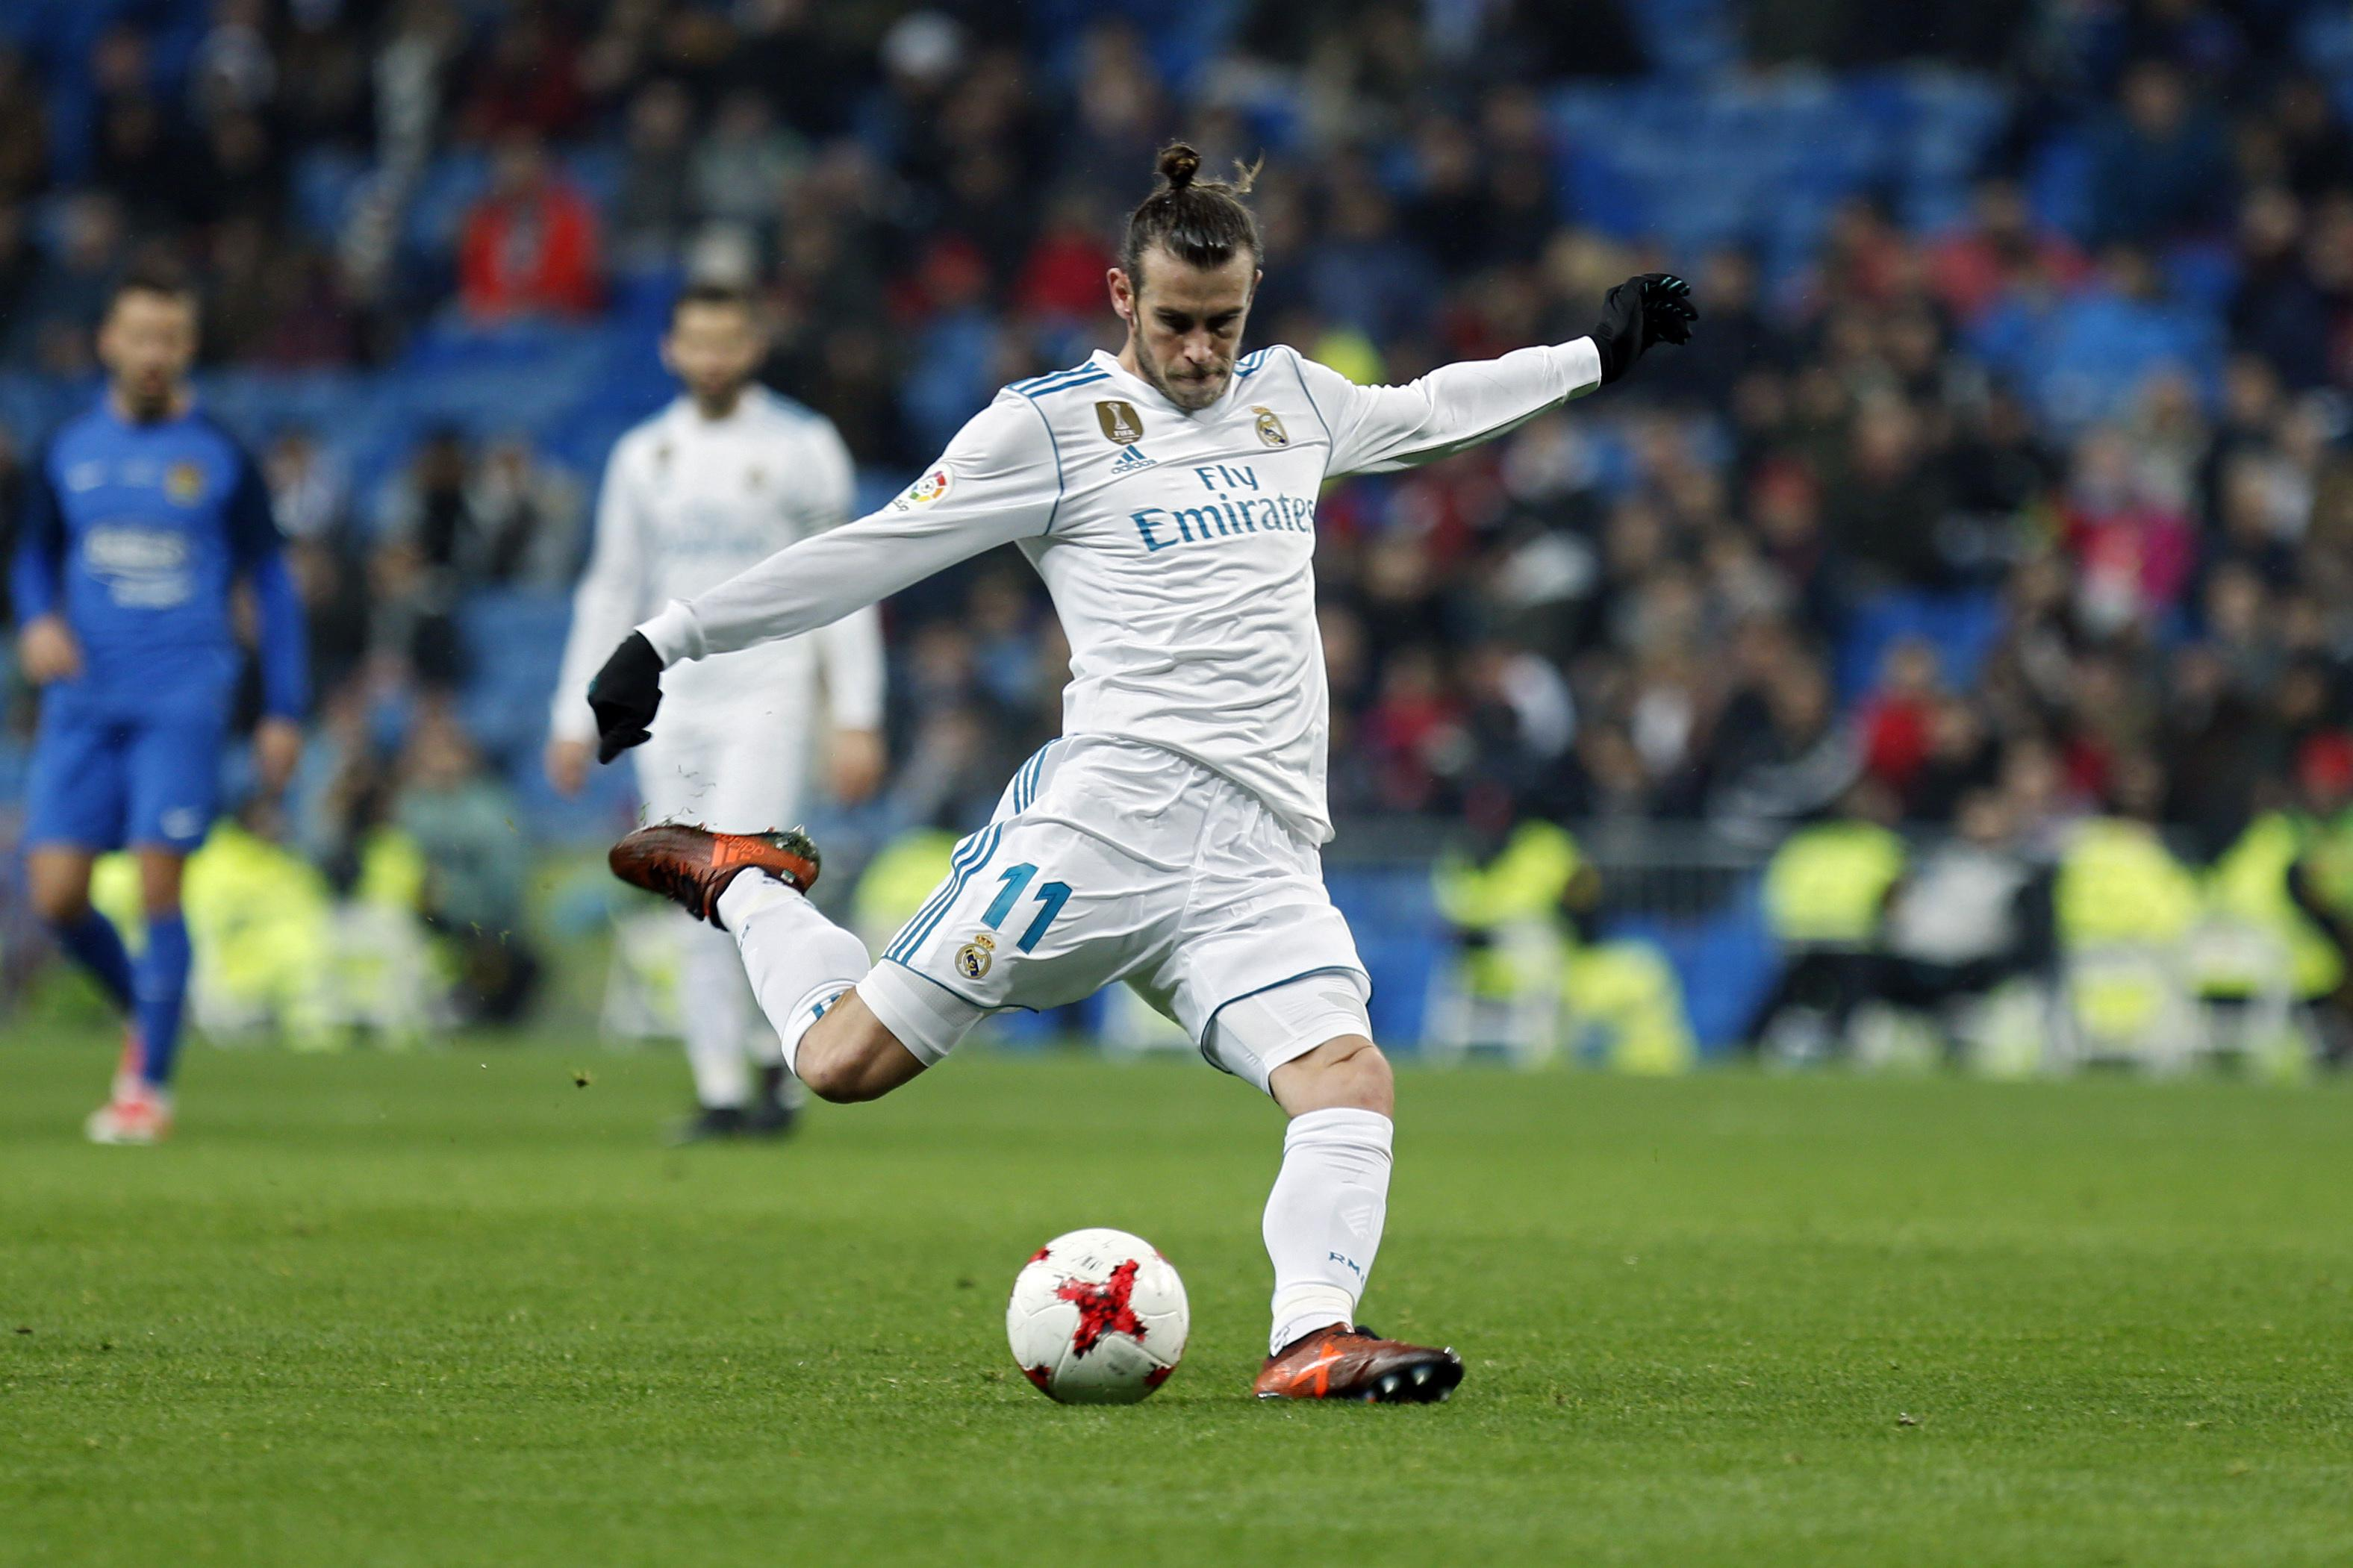 Bale played 30 minutes at the Bernabeu